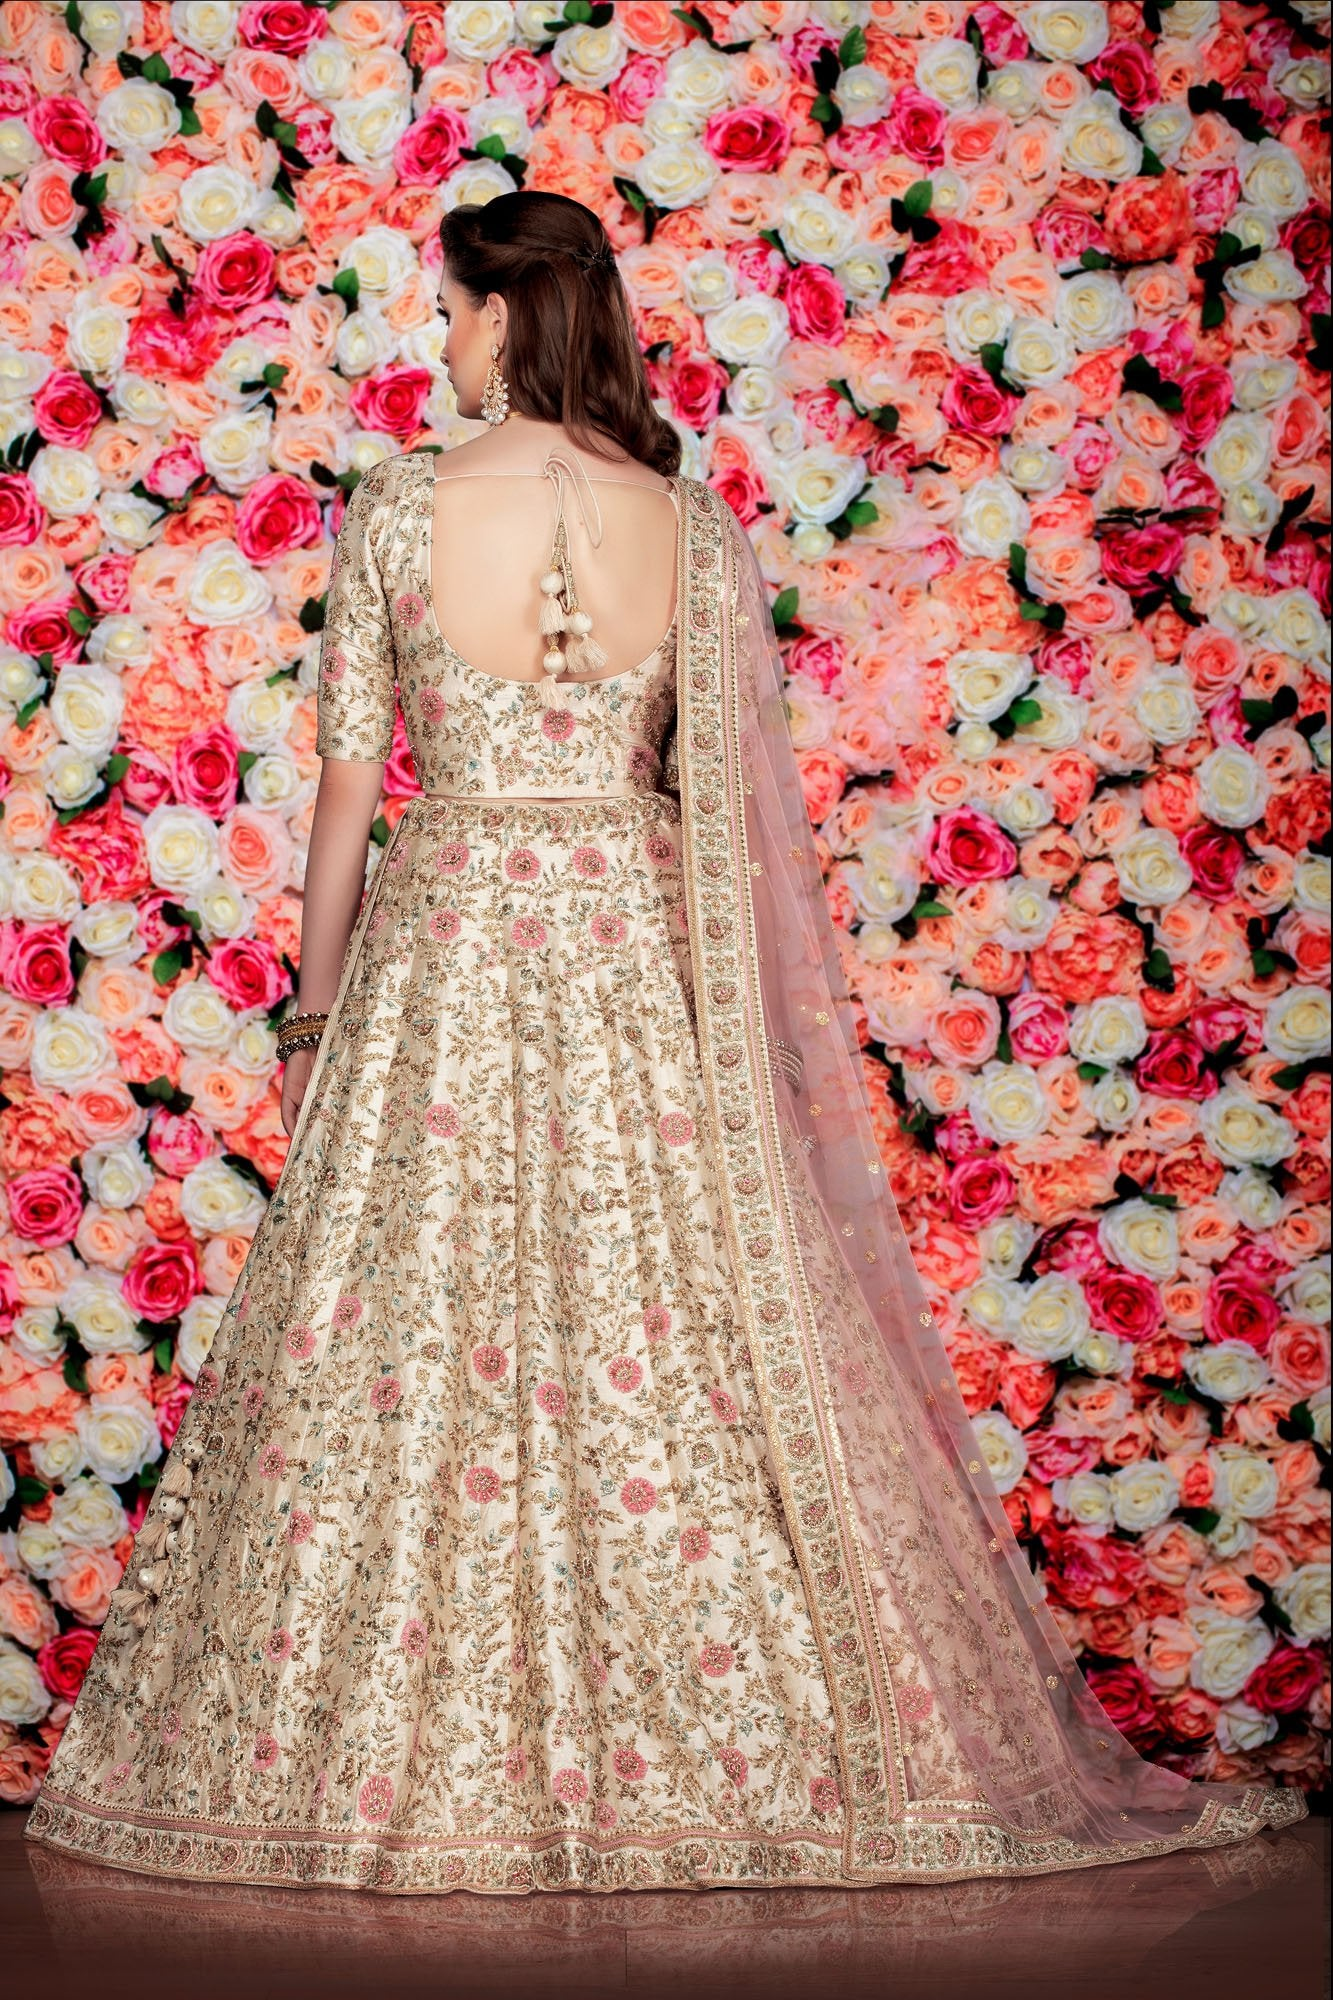 Ivory bridal lehenga with Contrast Peach Dupatta